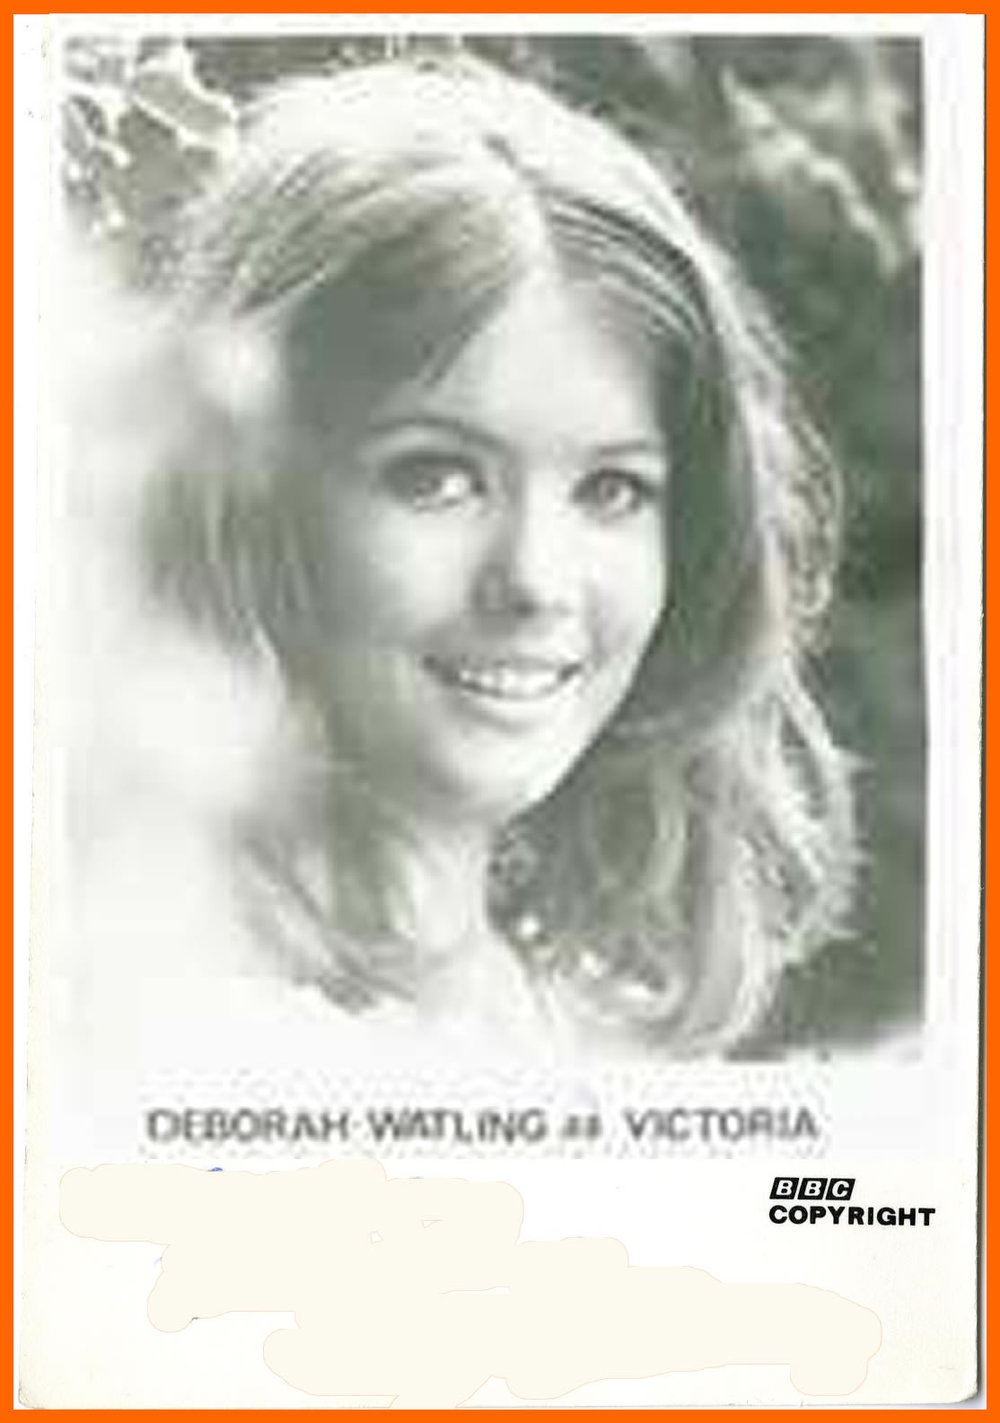 WANTED - BBC cast card of Deborah Watling as Victoria